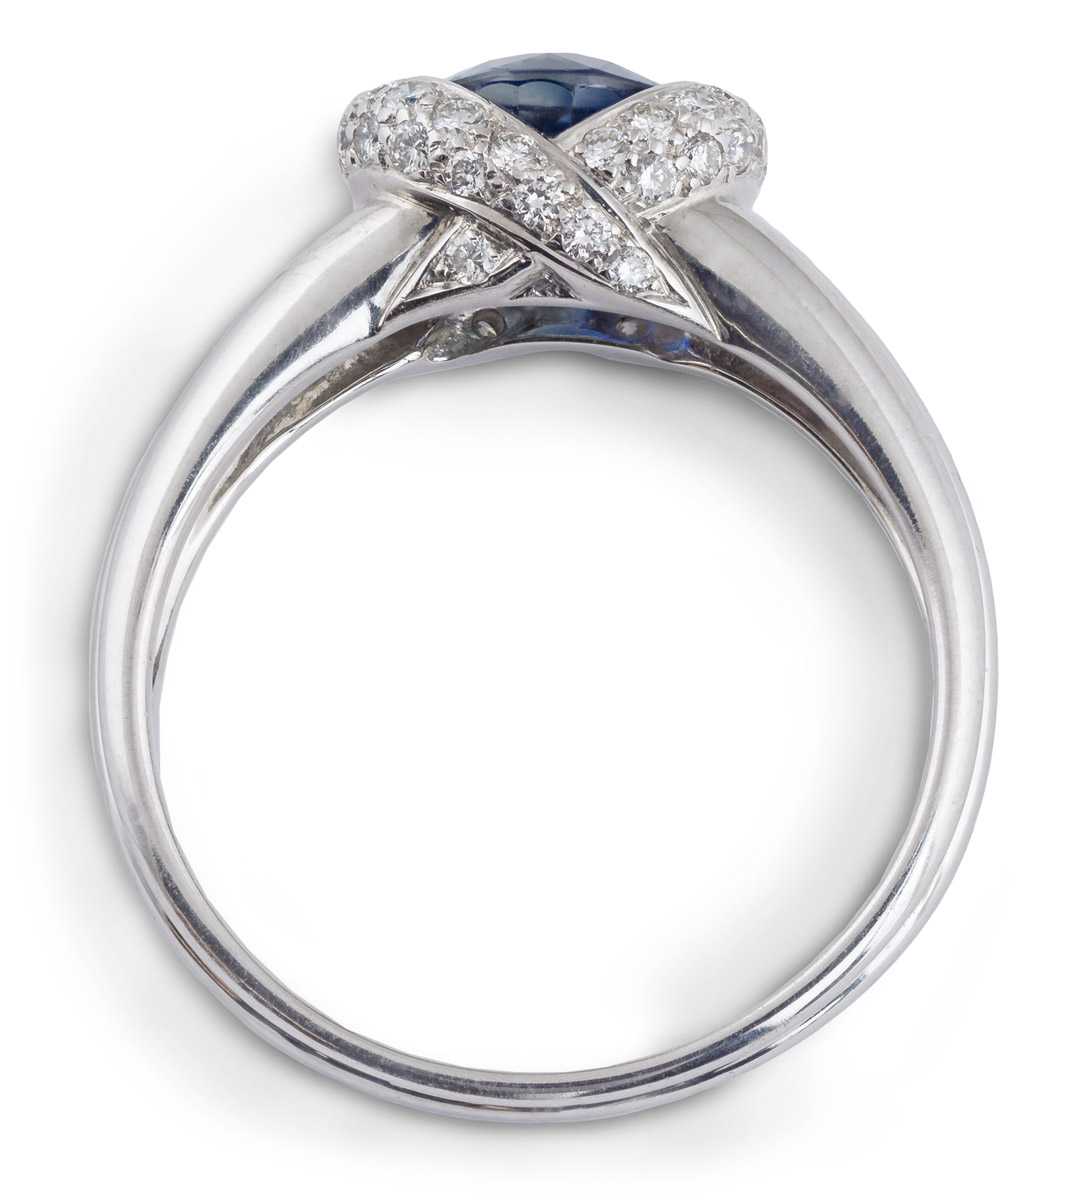 Sapphire Ring With Diamond Pave - Top